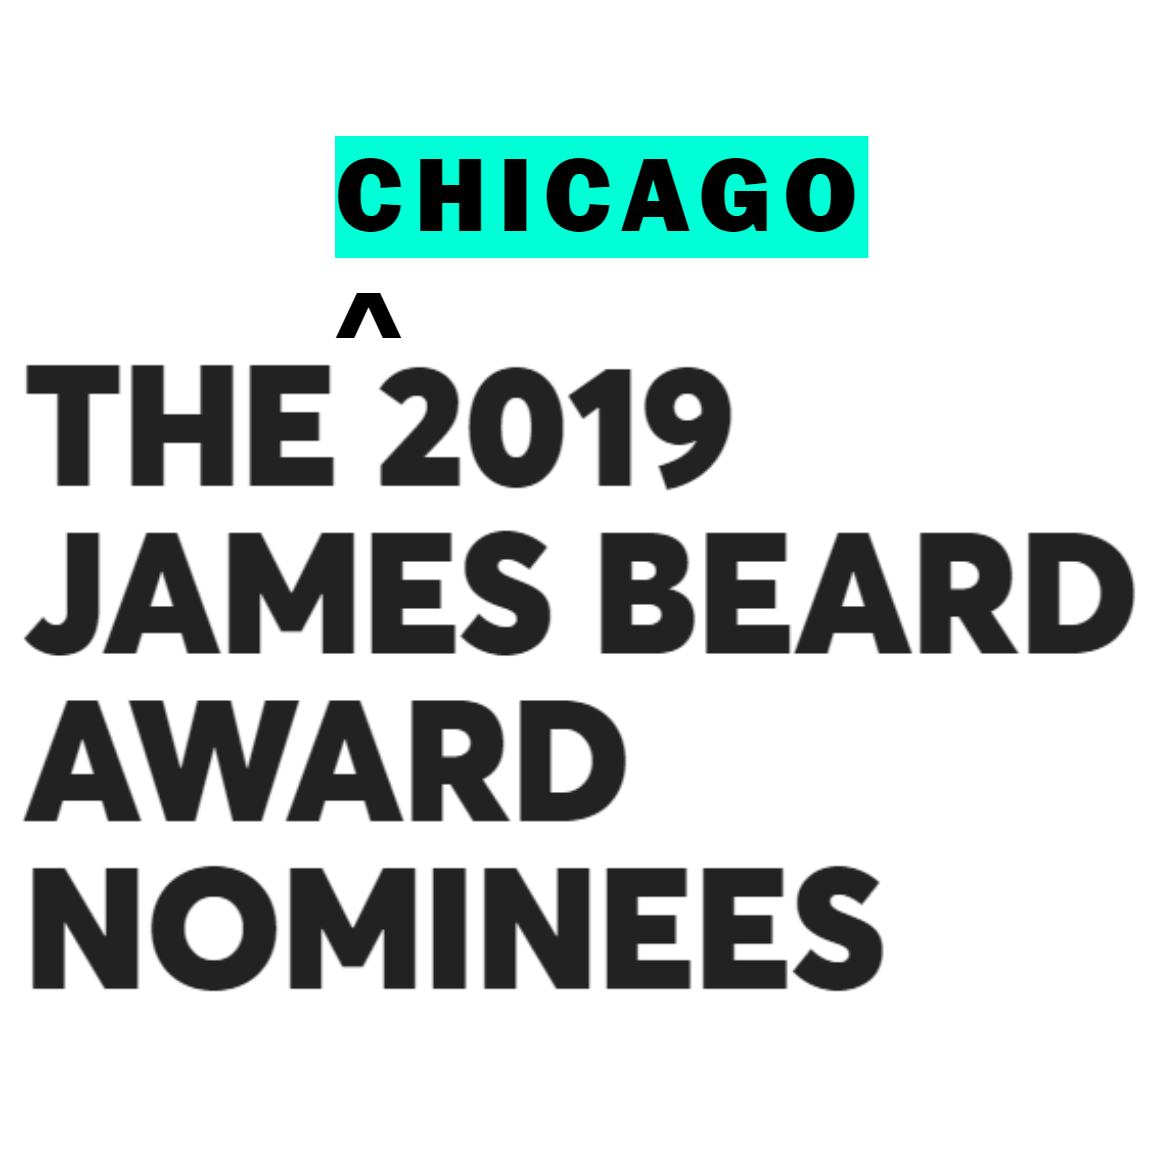 THE 2019 JAMES BEARD AWARD NOMINEES